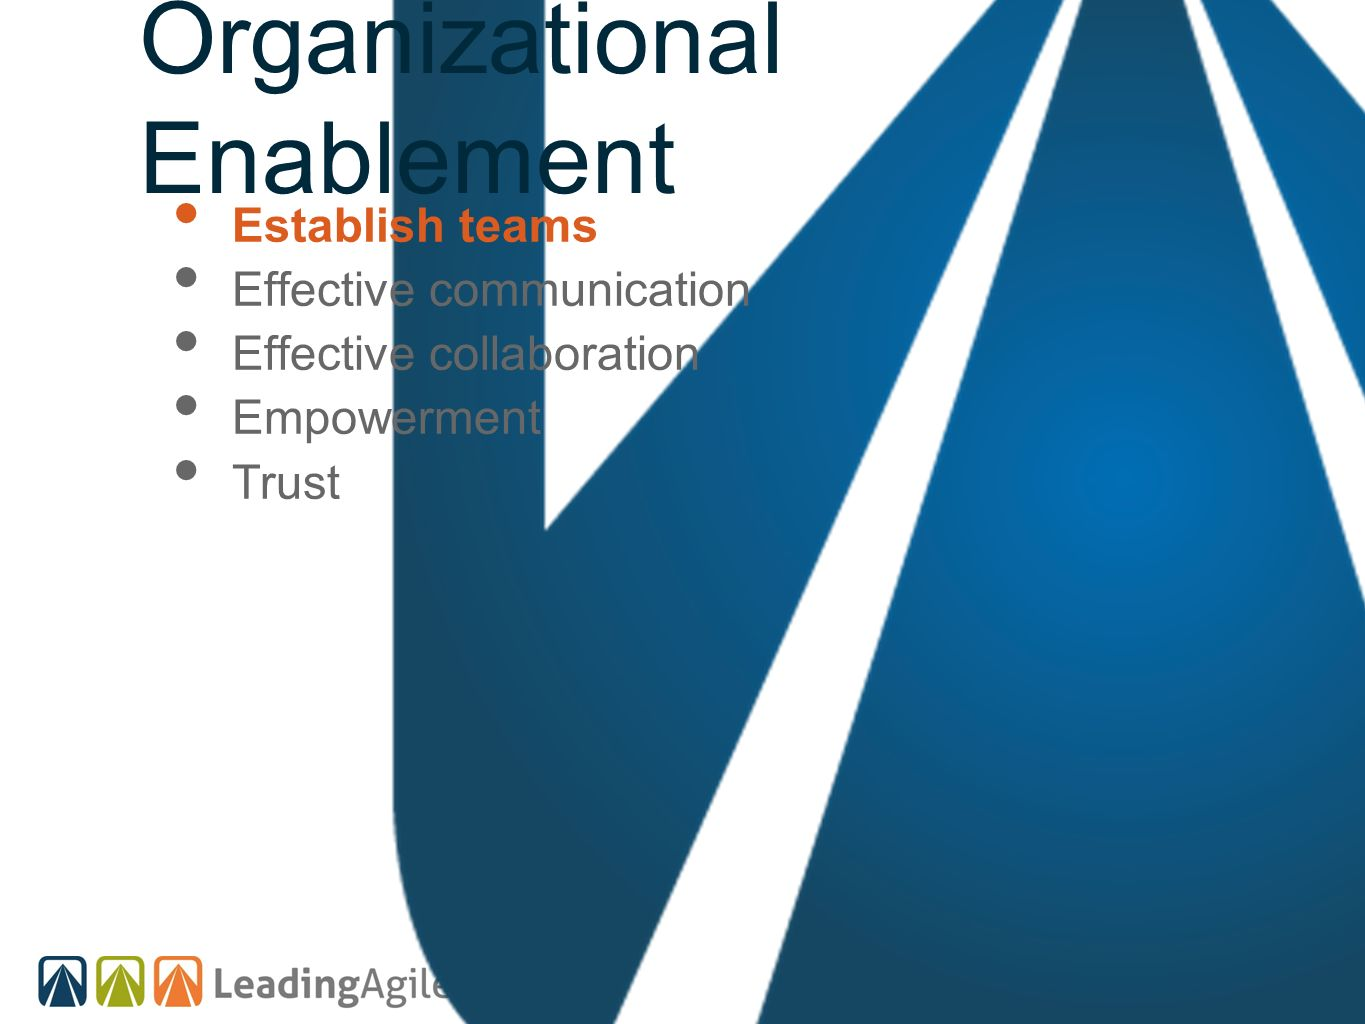 Organizational Enablement